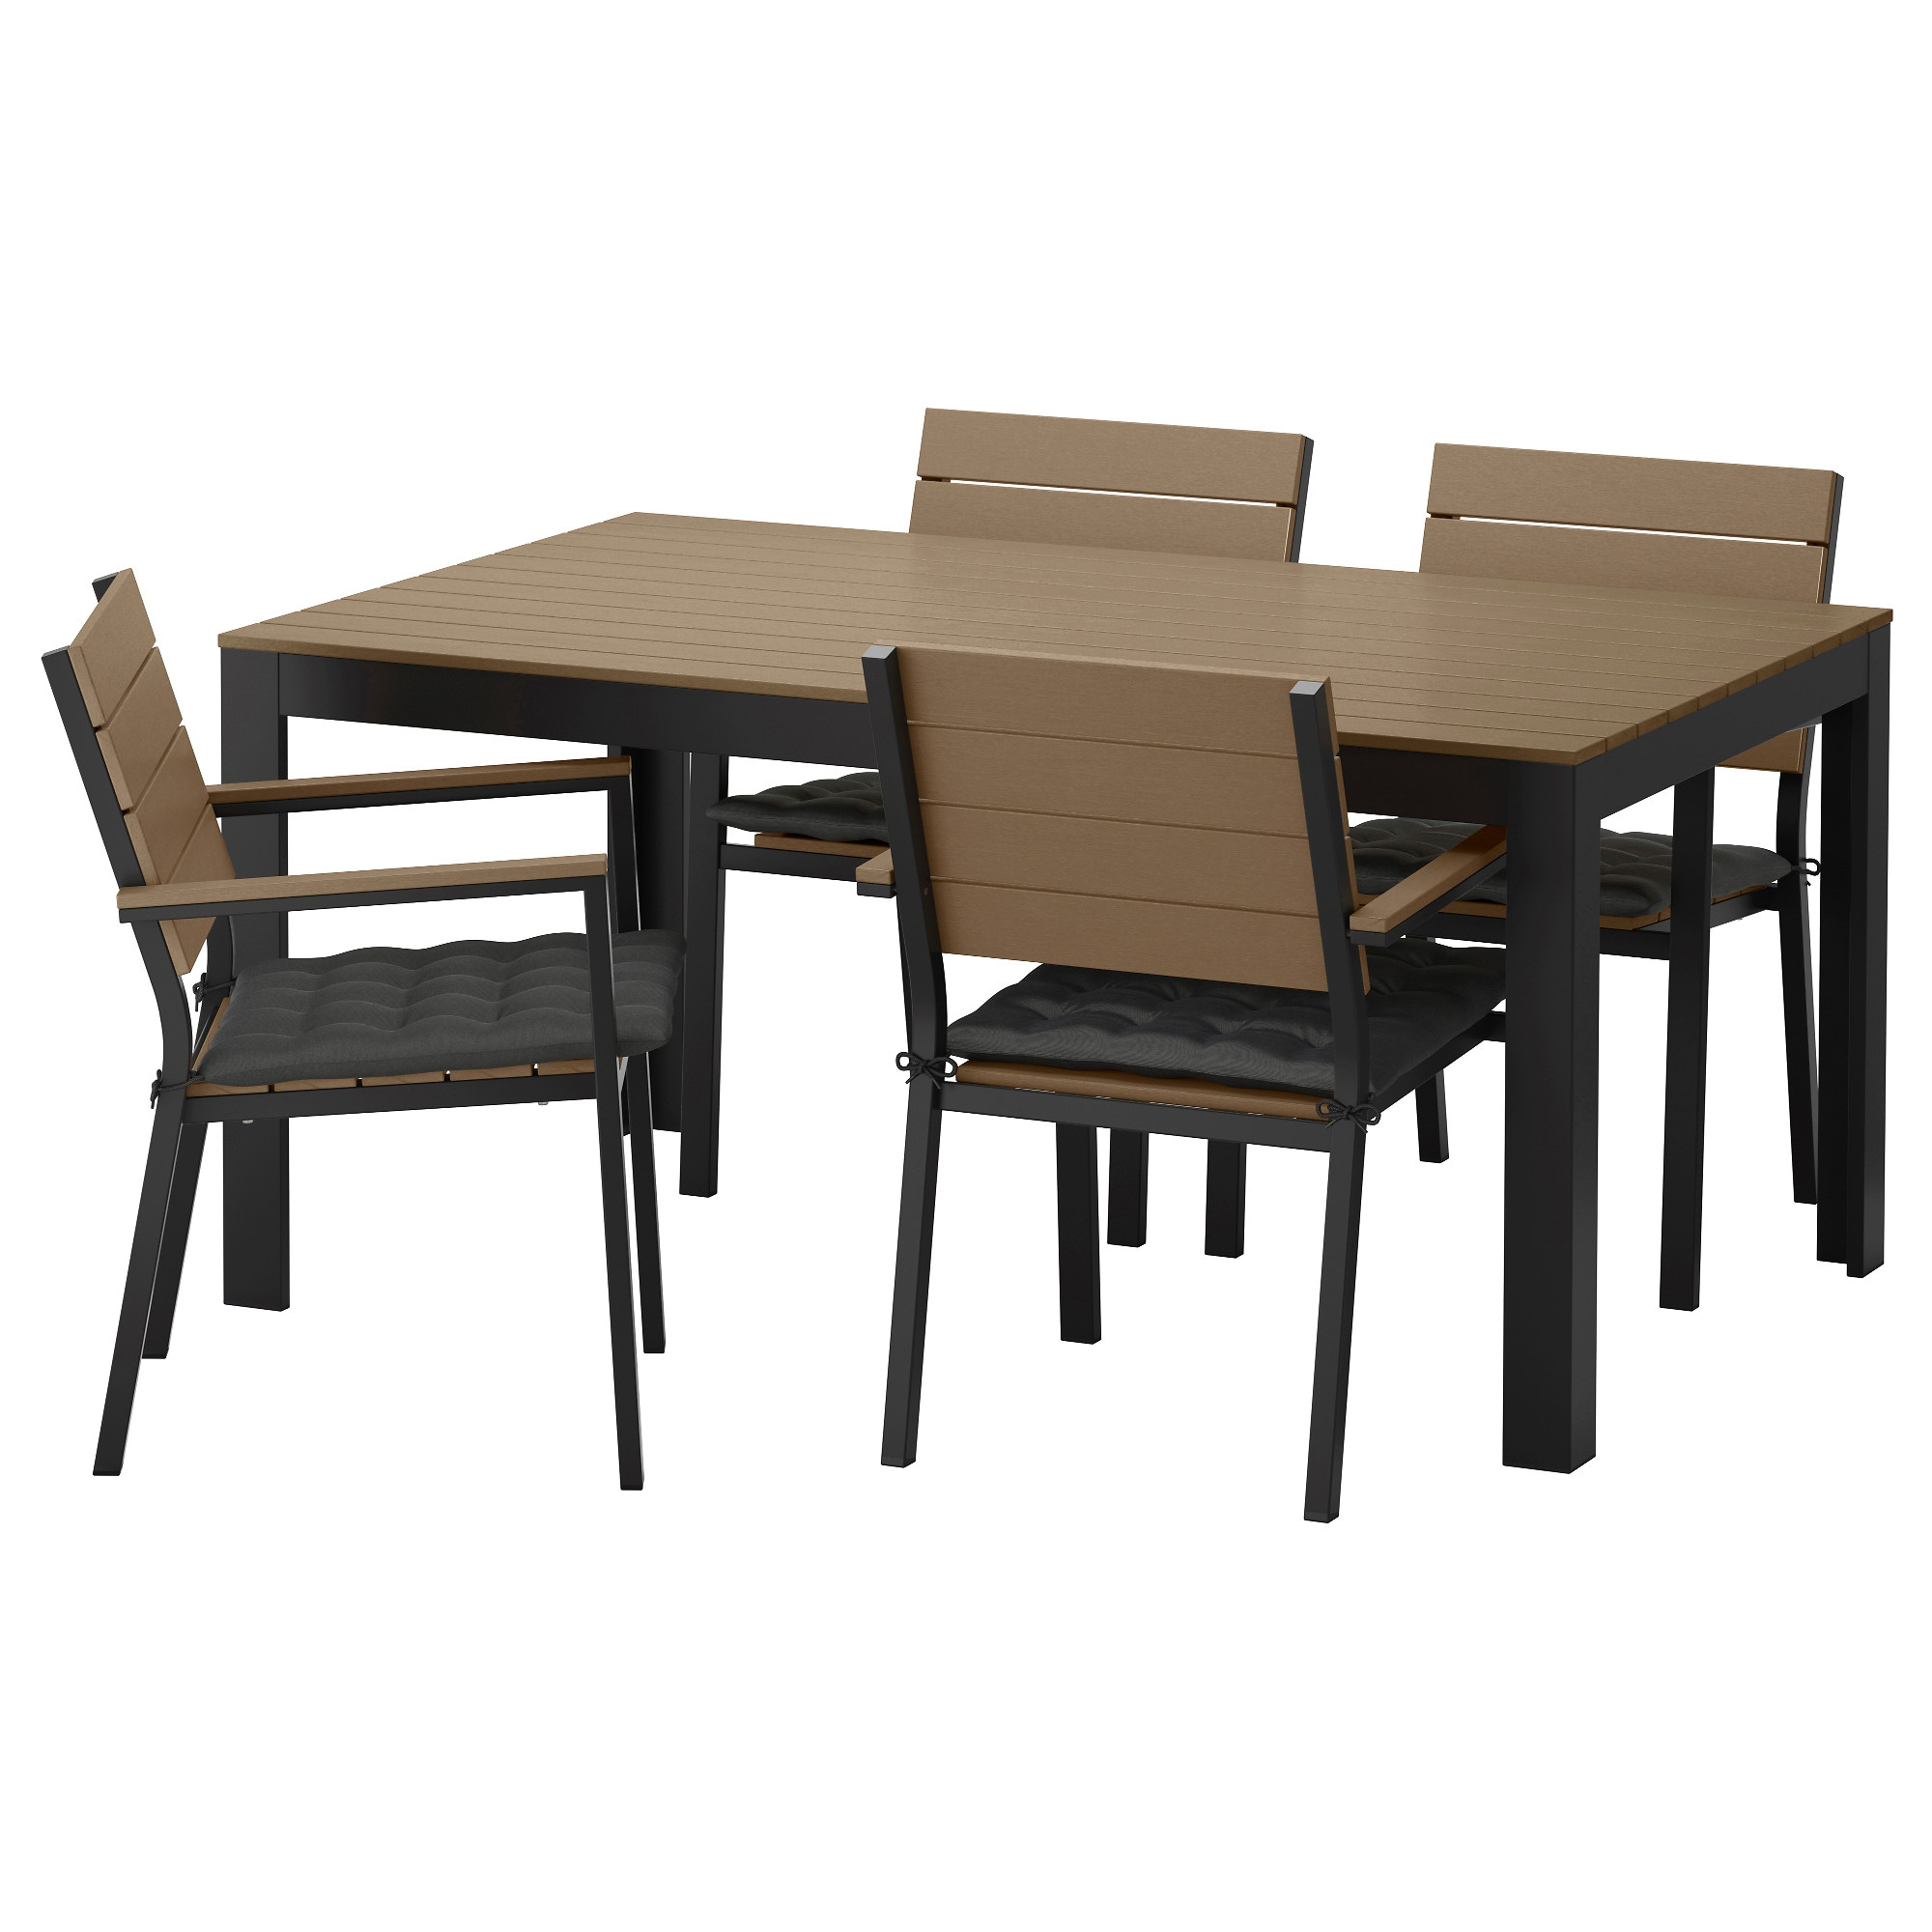 Exceptionnel IKEA FALSTER Table+4 Chairs W Armrests, Outdoor